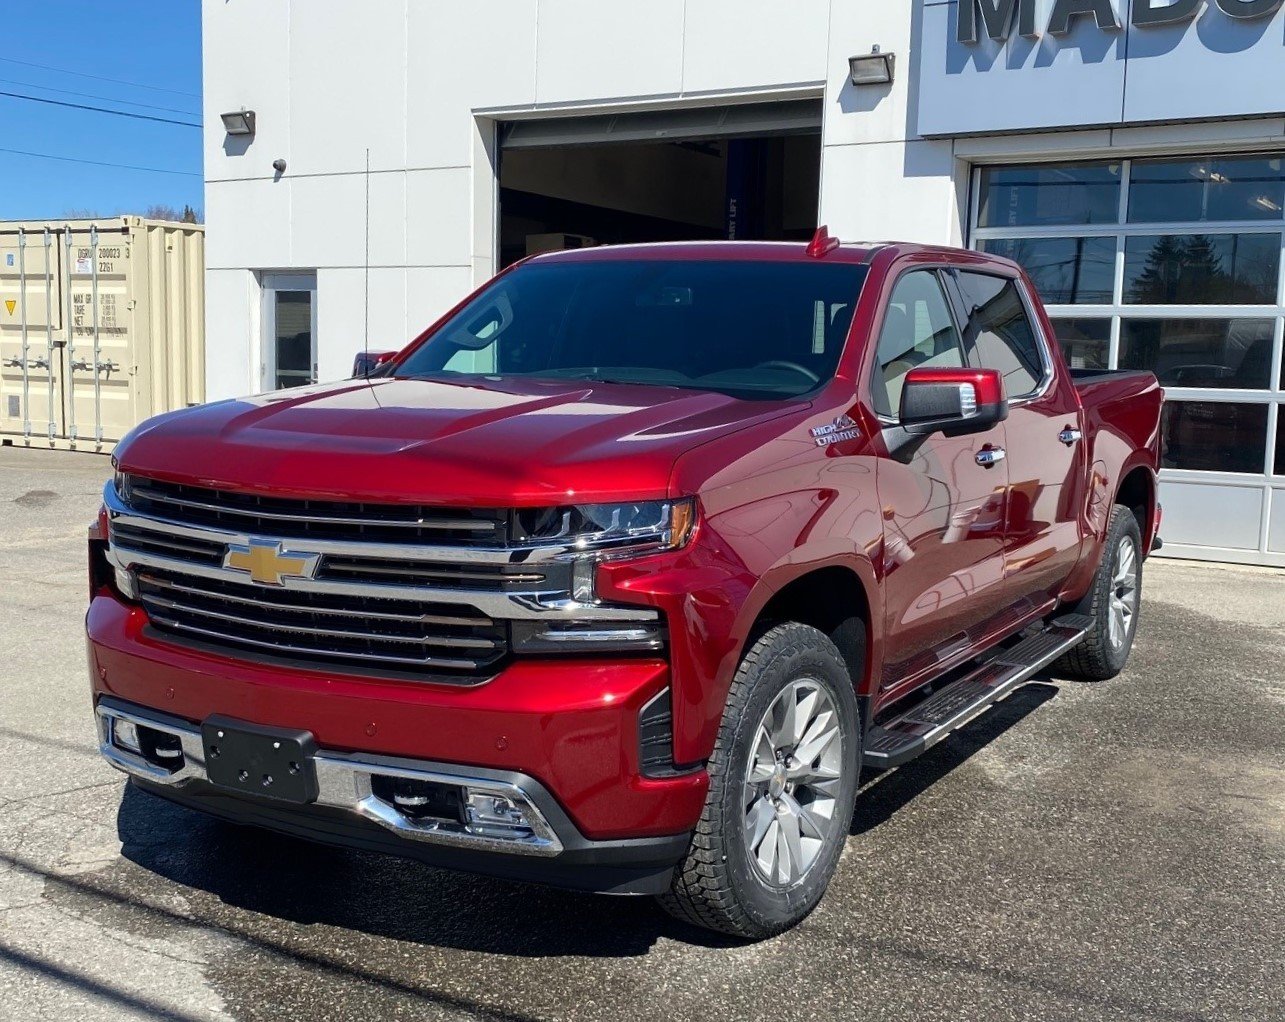 2021 Chevrolet Silverado 1500 High Country - 12km